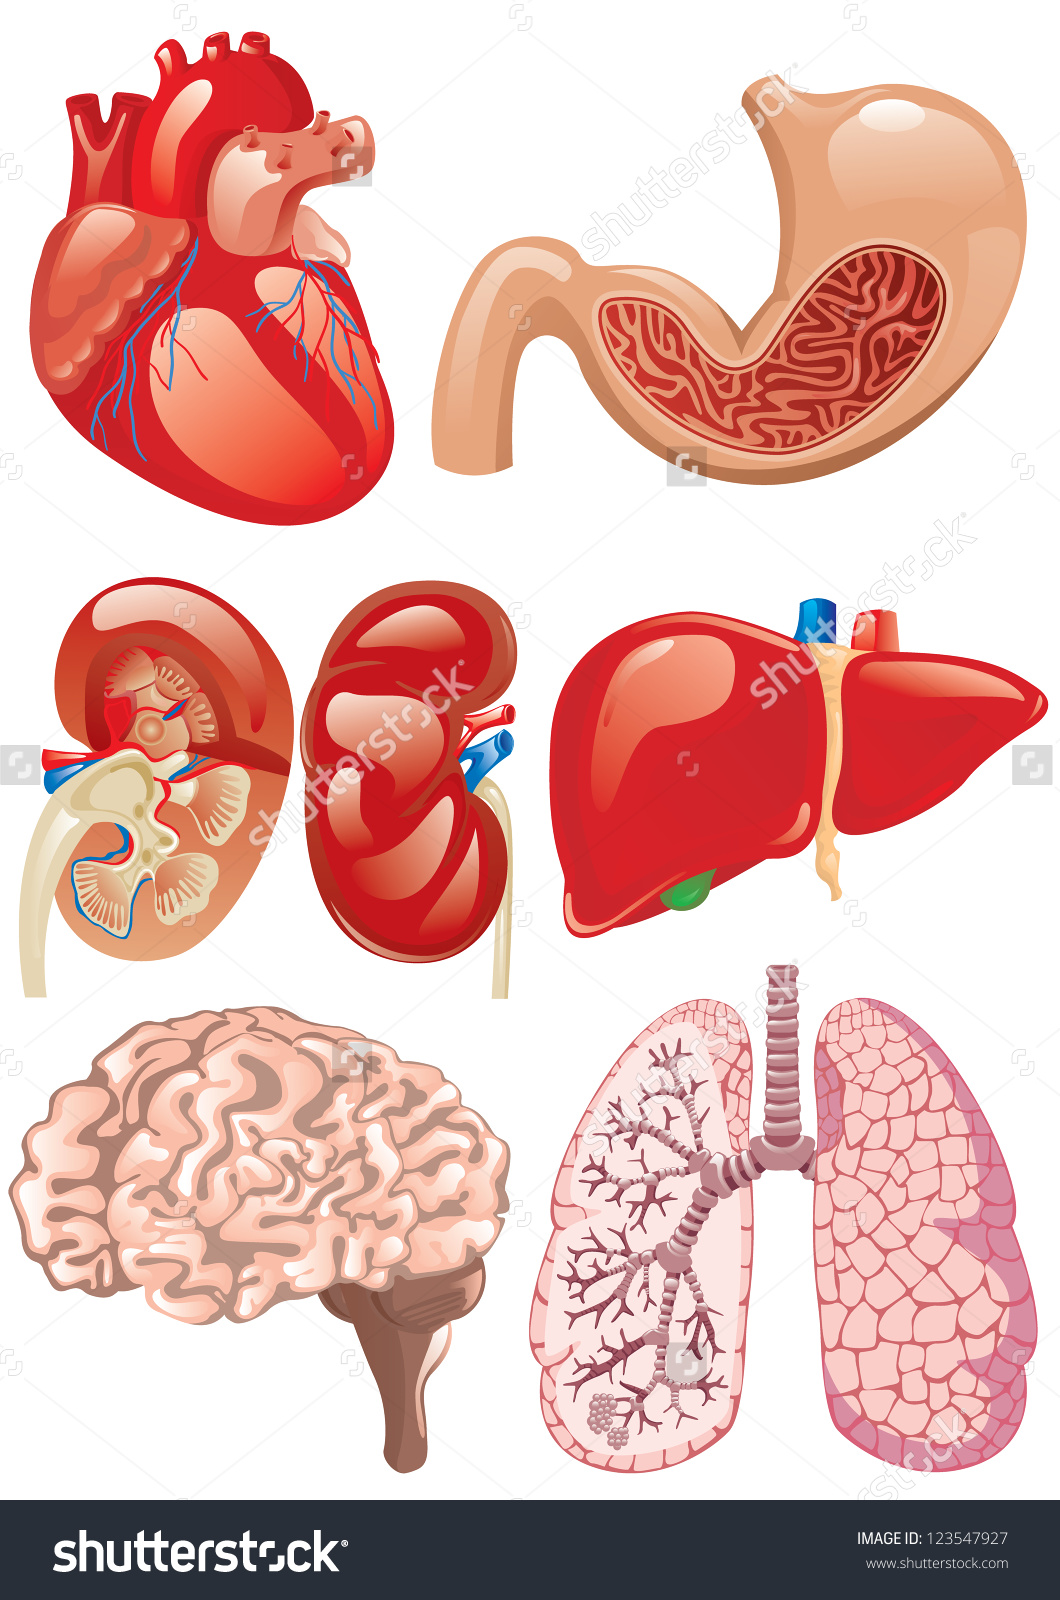 Internal organs pictures